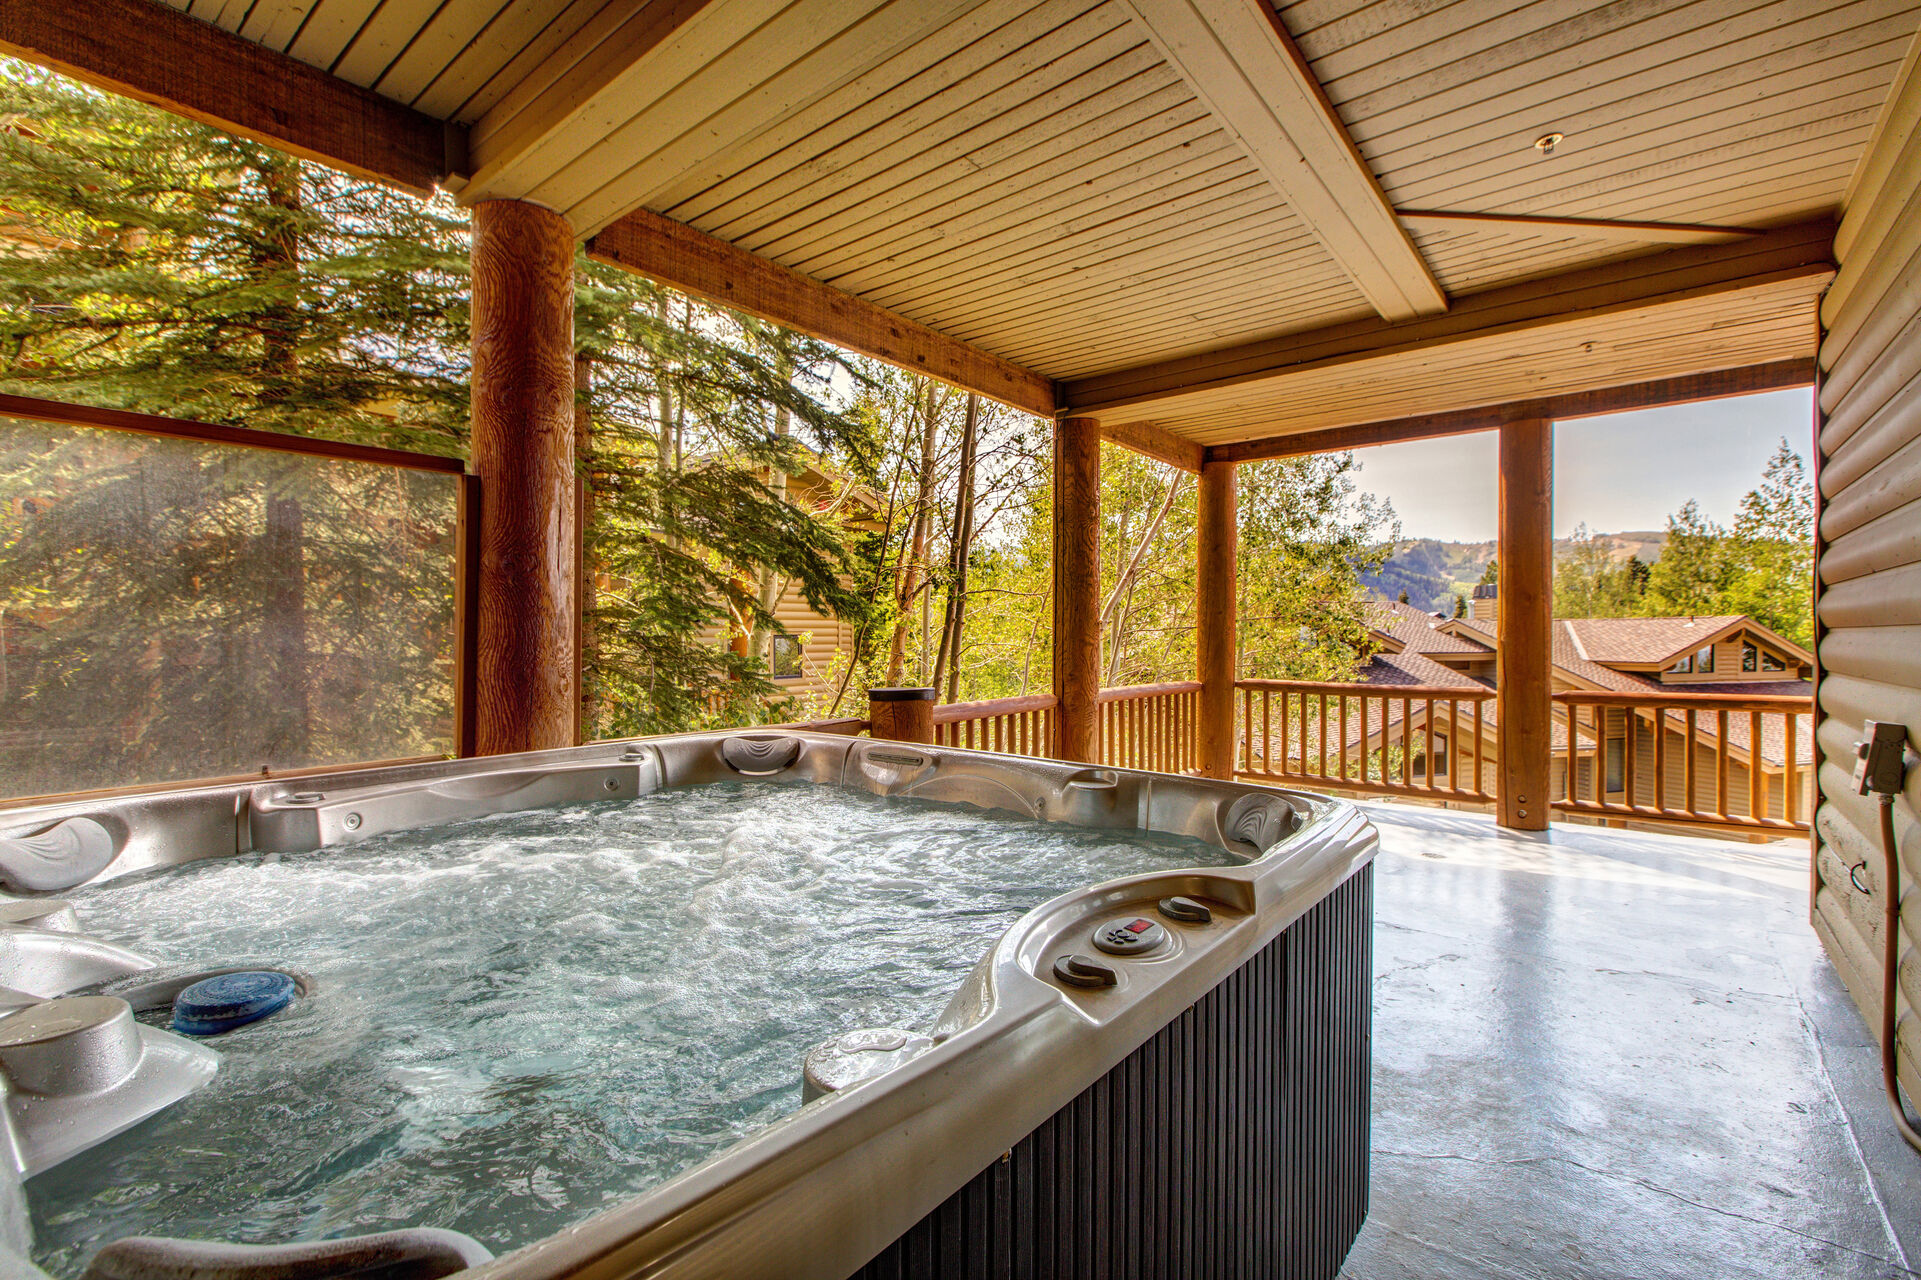 Private Hot Tub on Lower Level Covered Patio with Stunning Mountain Views